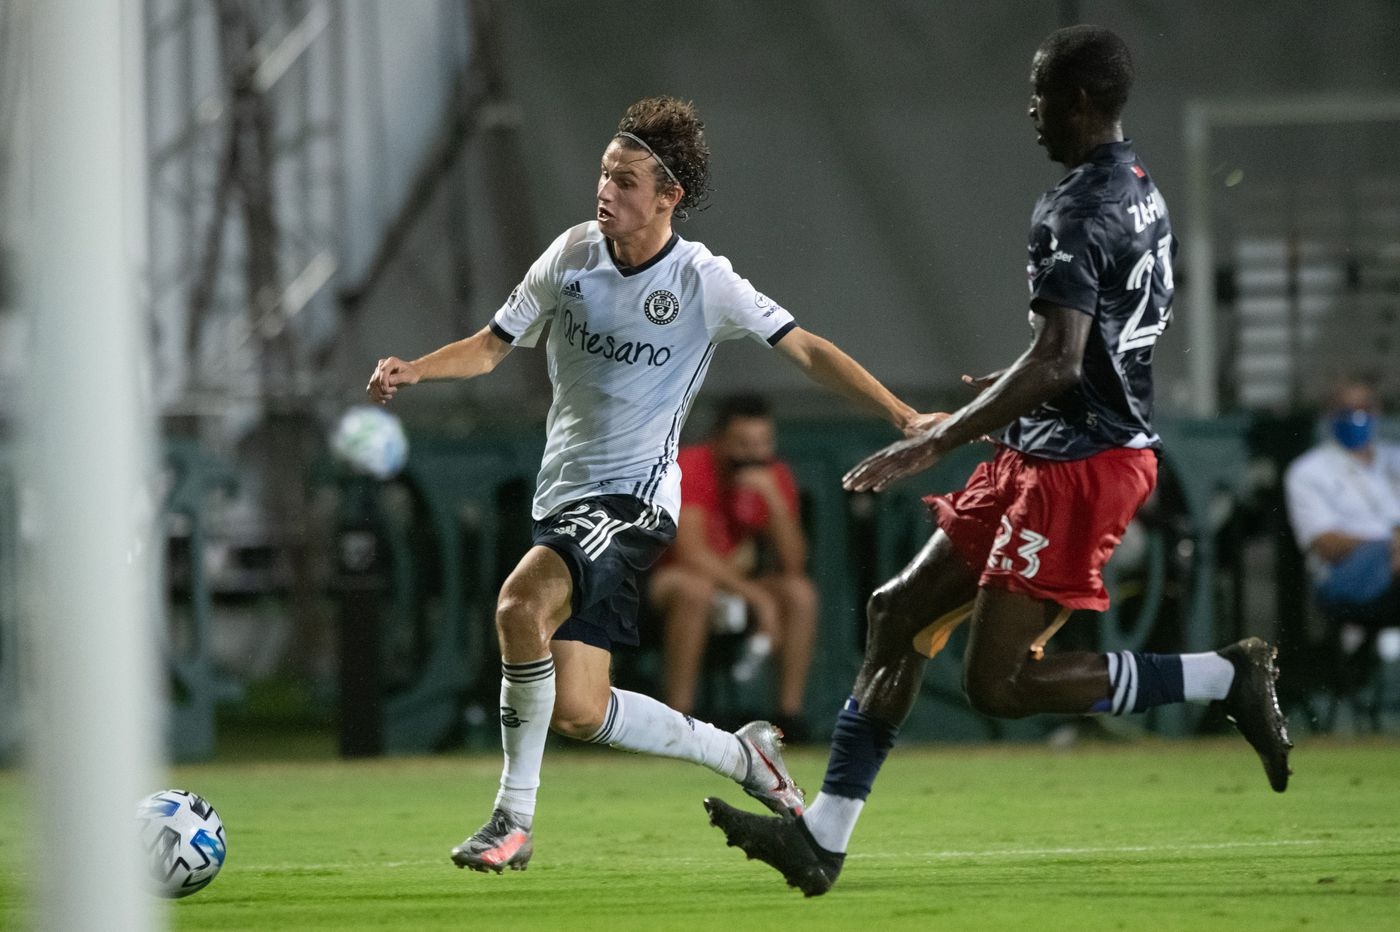 Union-Sporting Kansas City will have Juventus, Celtic and others watching top MLS prospects